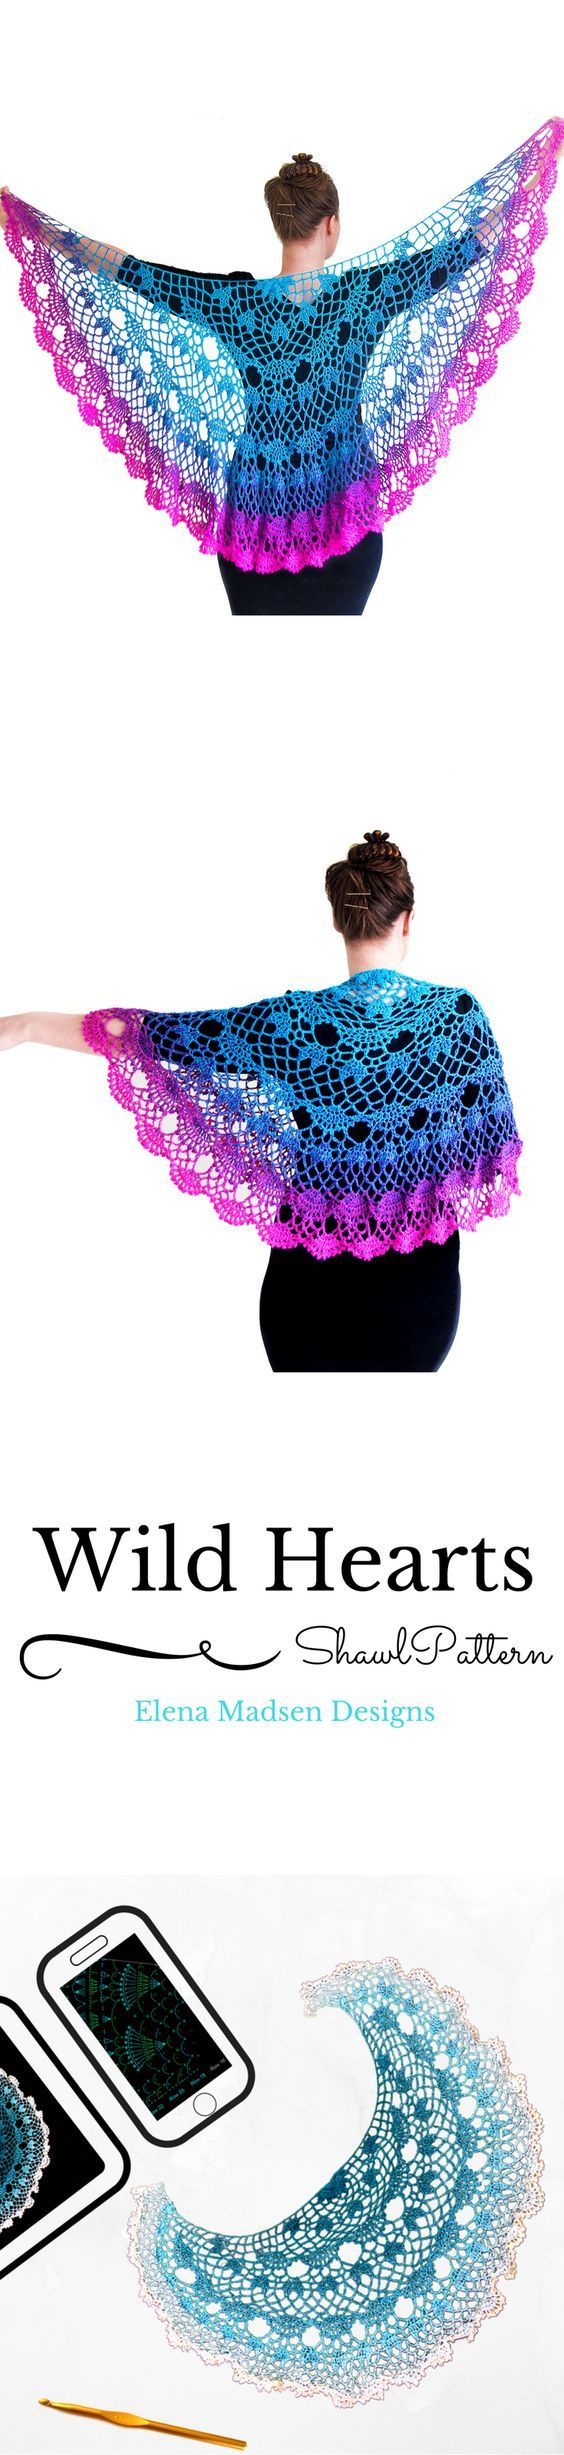 6115 best crochet shawl xxx images on Pinterest | Crochet shawl ...